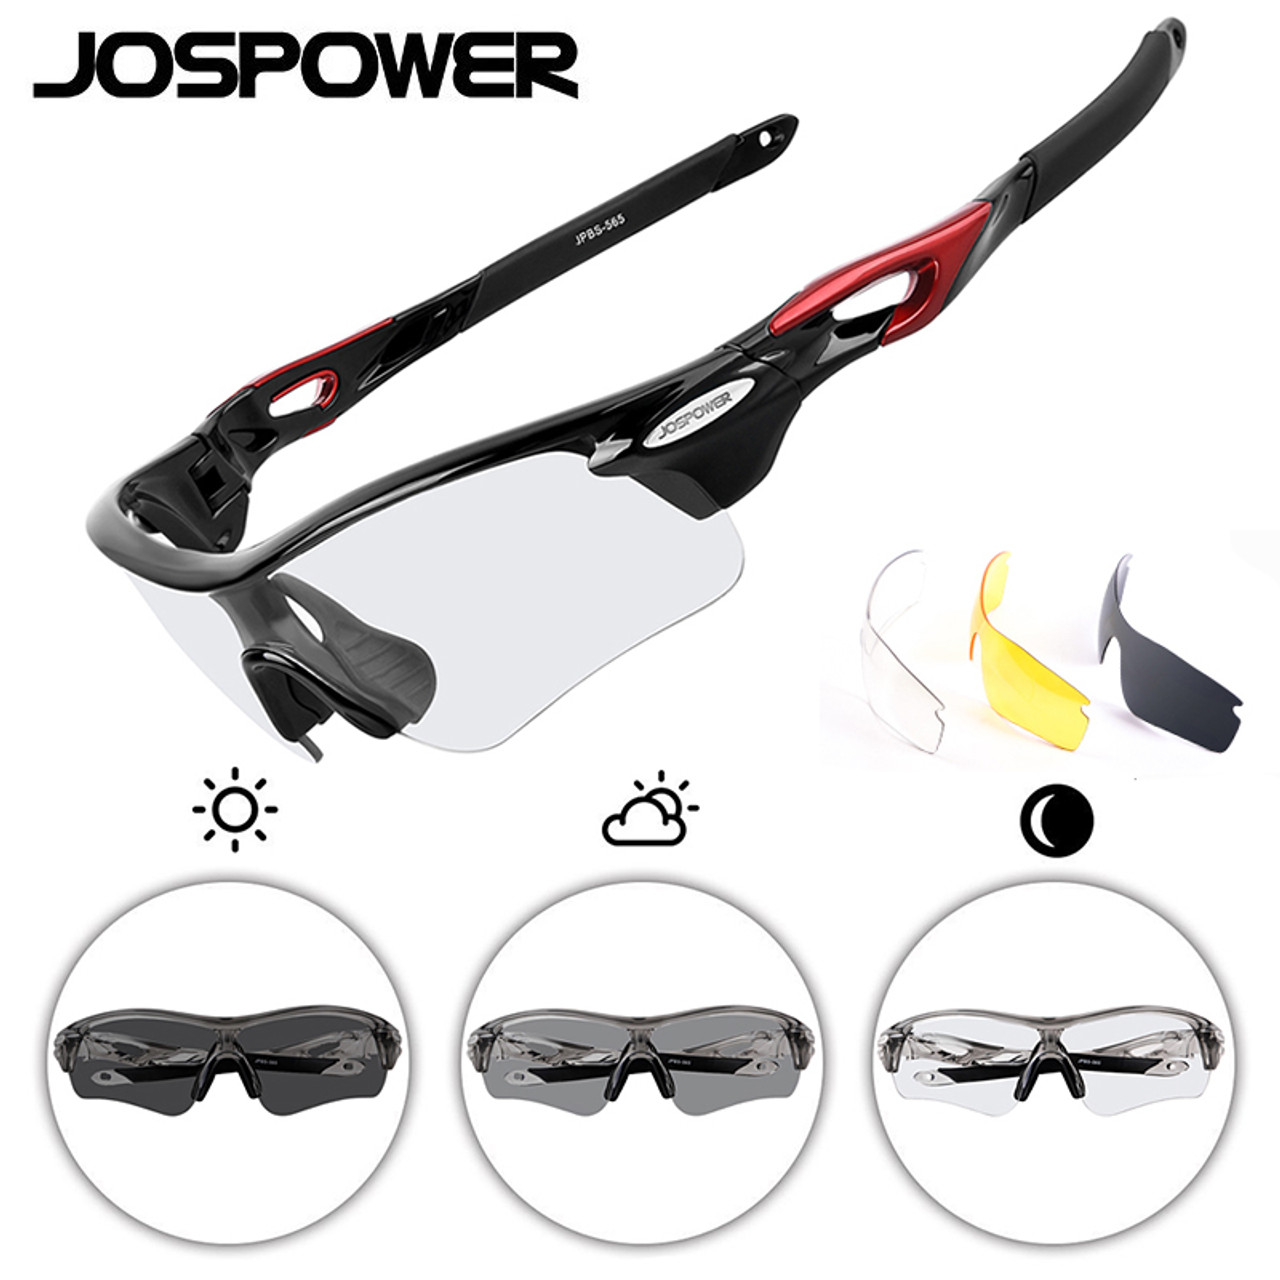 nuovo concetto b7107 8ebd7 JOSPOWER Photochromic Cycling Glasses Sunglasses UV400 Polarized Bike  Eyewear Goggles Outdoor Sports 3 Lens occhiali ciclismo